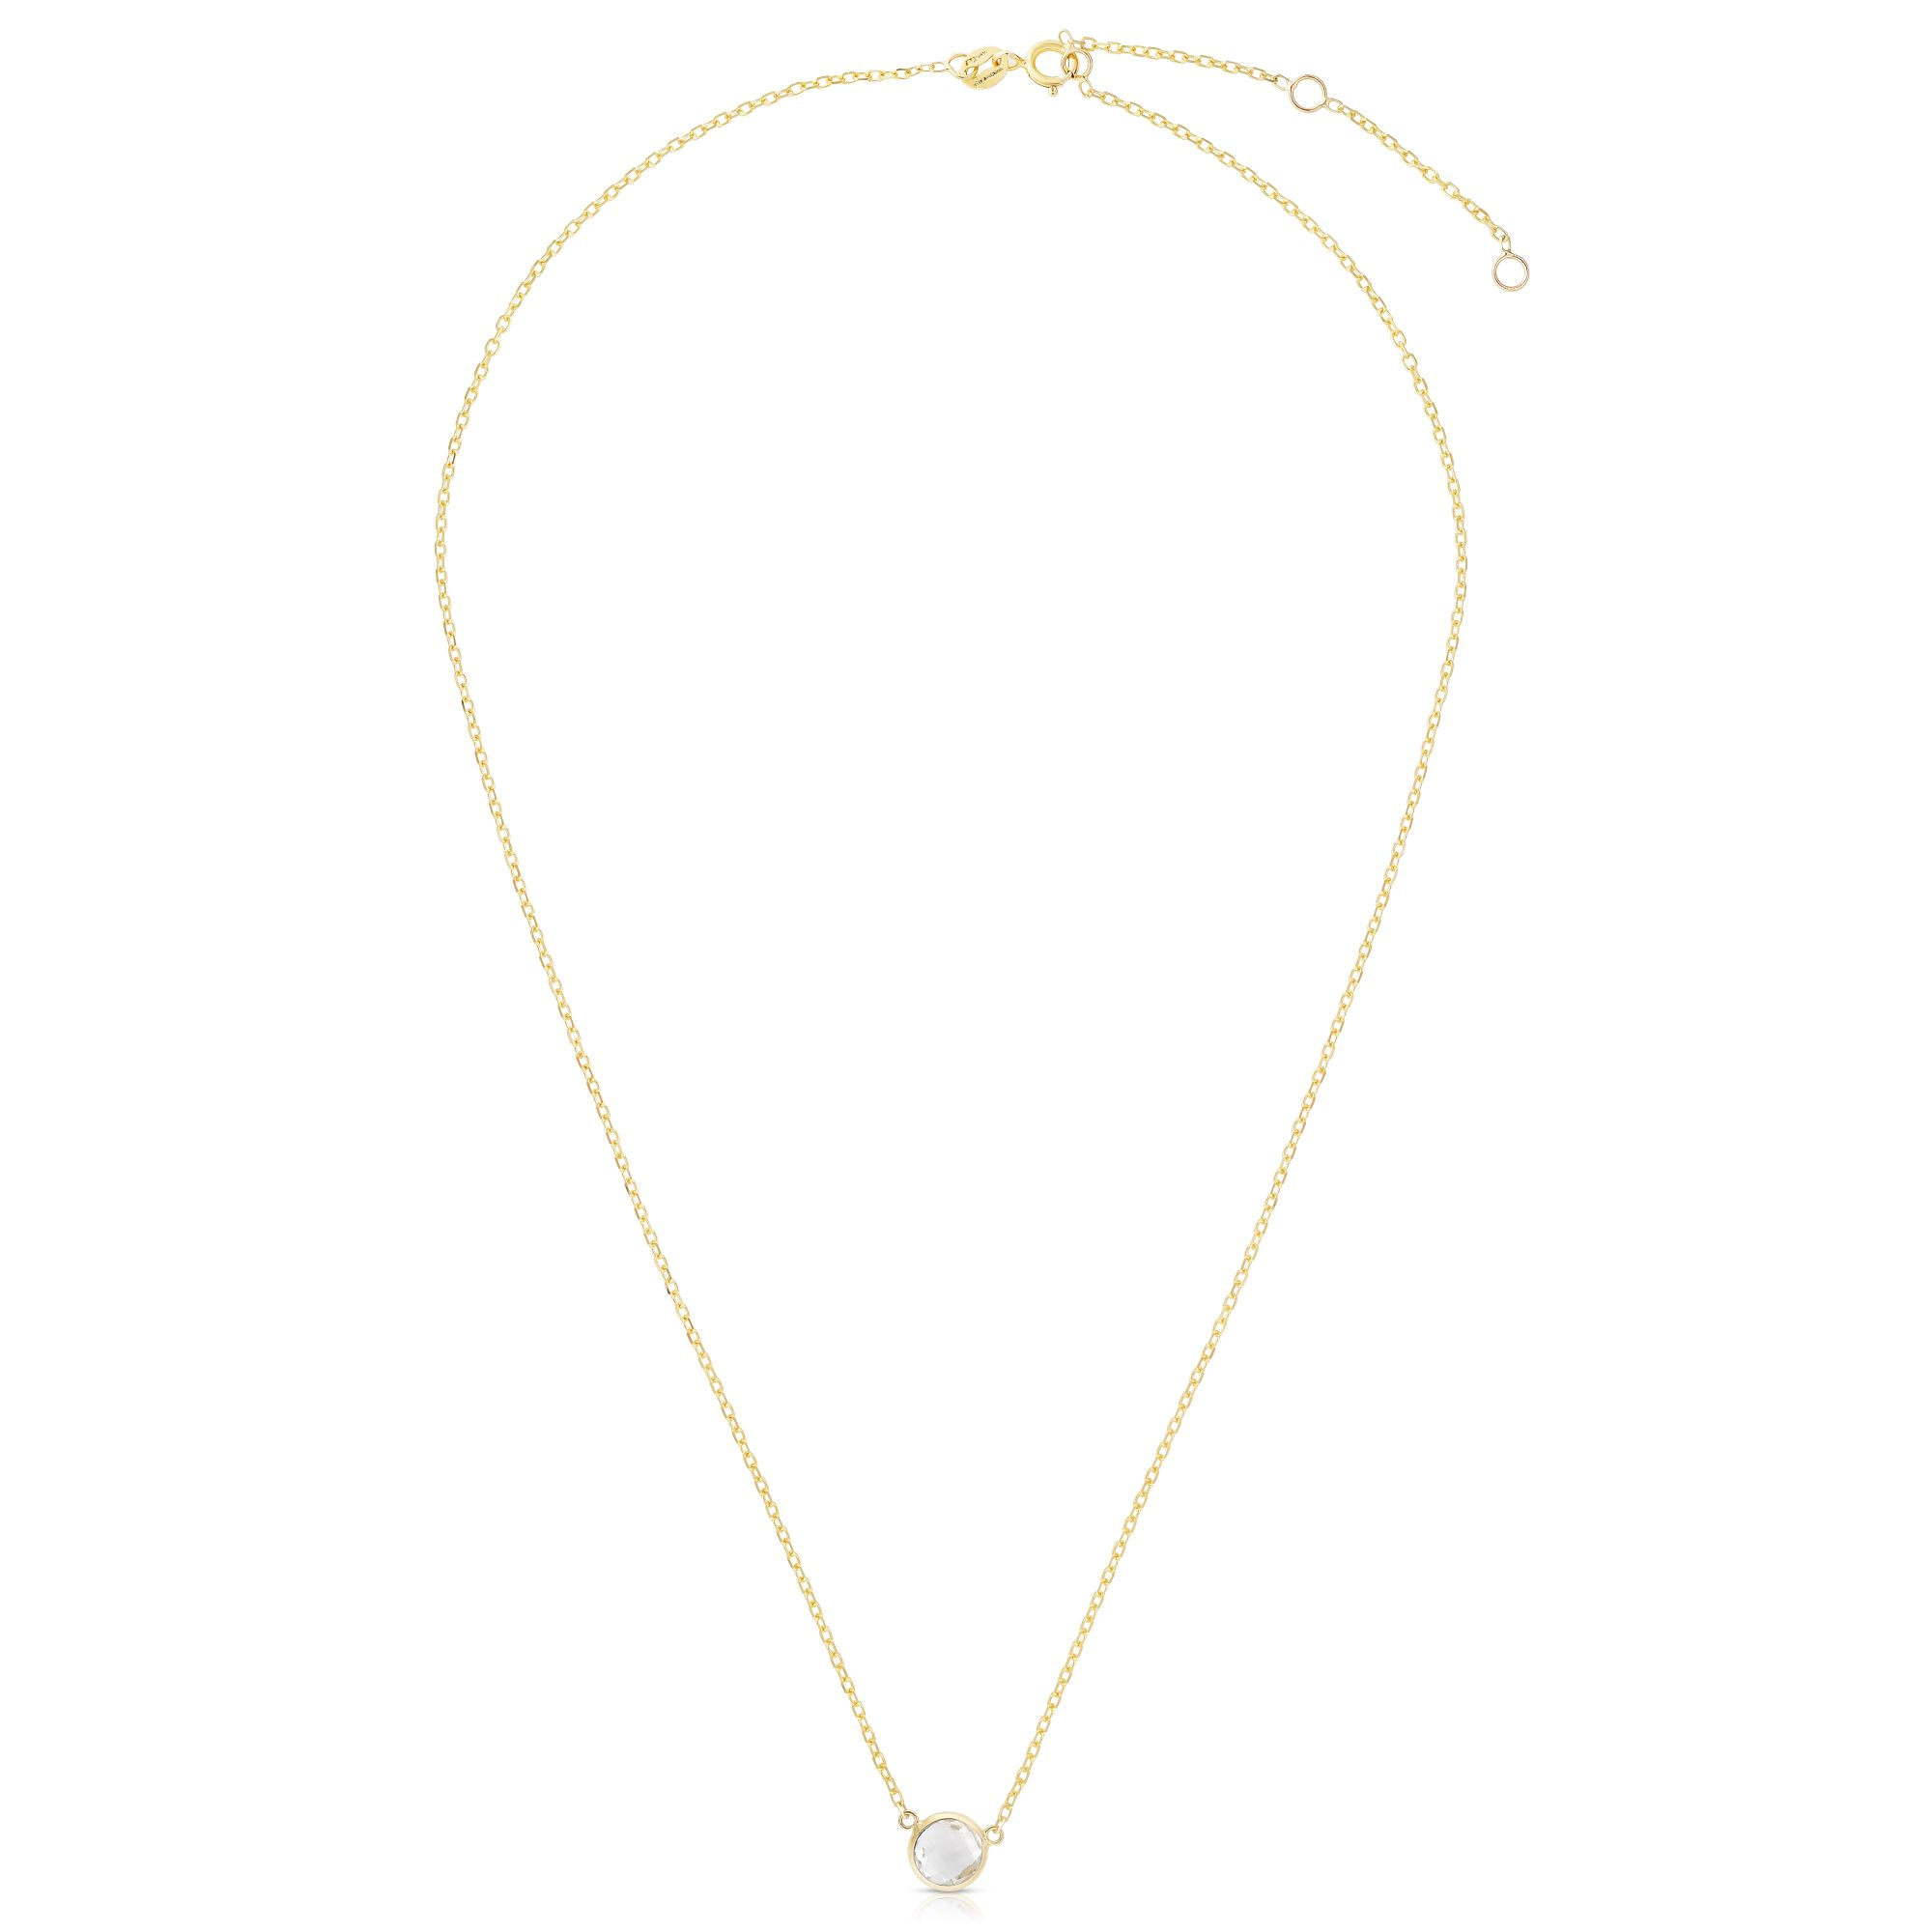 14kt Gold 17 inches Yellow Finish Extendable Colored Stone Necklace with Spring Ring Clasp with 0.9000ct 6mm Round Clear Topaz